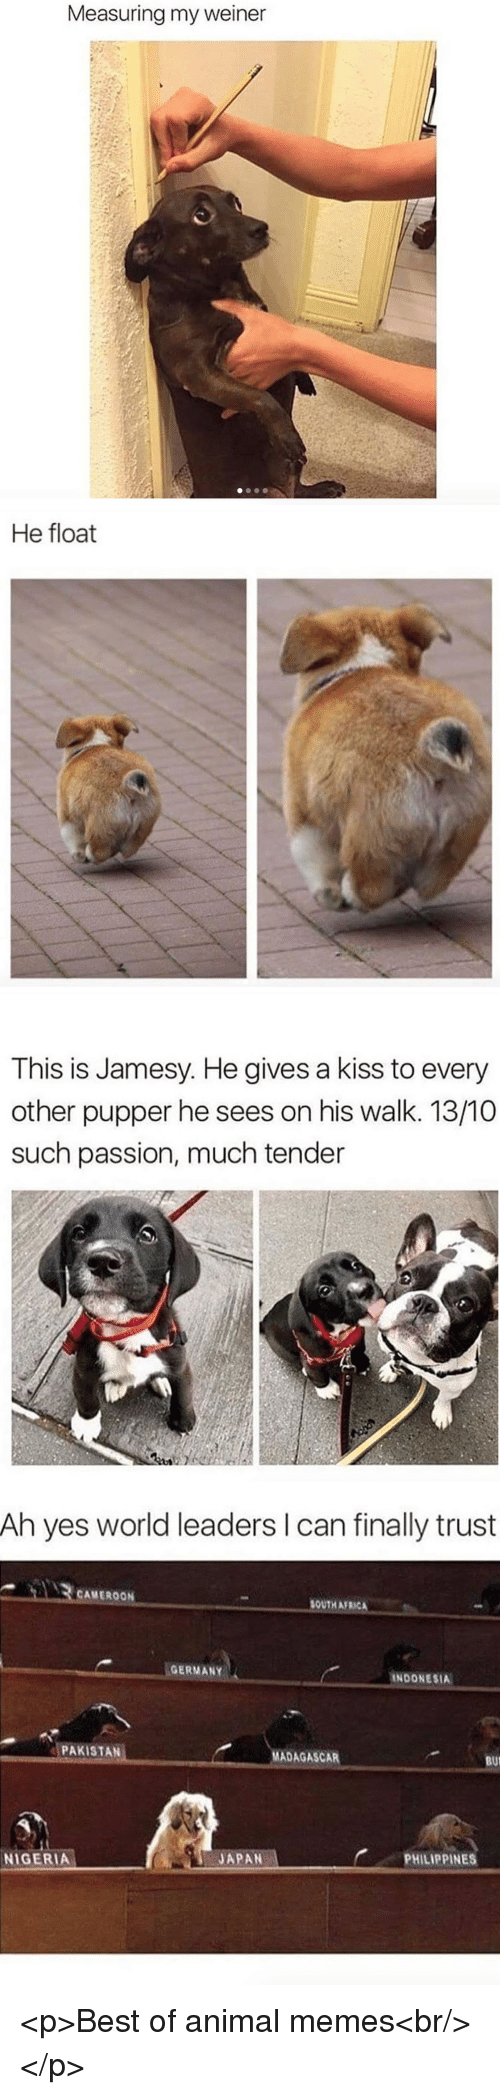 Africa, Memes, and Animal: Measuring my weiner   He float   This is Jamesy. He gives a kiss to every  other pupper he sees on his walk. 13/10  such passion, much tender   Ah yes world leaders I can finally trust  CAMEROON  SOUTH AFRICA  GERMANY  INDONESIA  PAKISTAN  MADAGASCAR  BUI  PHILIPPINES  JAPAN-  NIGERIA <p>Best of animal memes<br/></p>